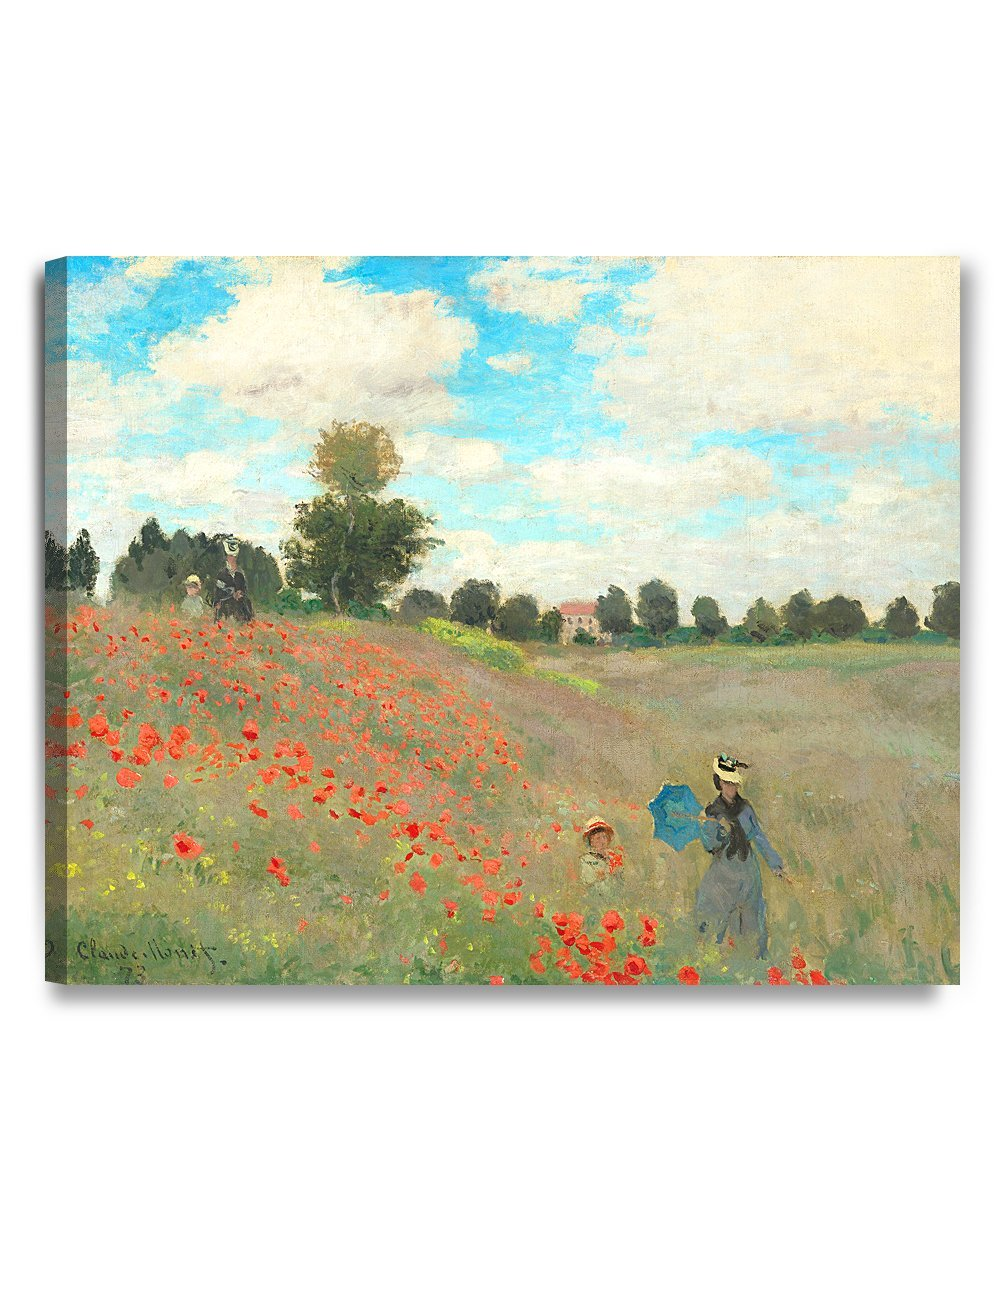 DecorArts - Poppies at Argenteuil, 1873, Claude Monet Art Reproduction. Giclee Canvas Prints Wall Art for Home Decor 30x24""